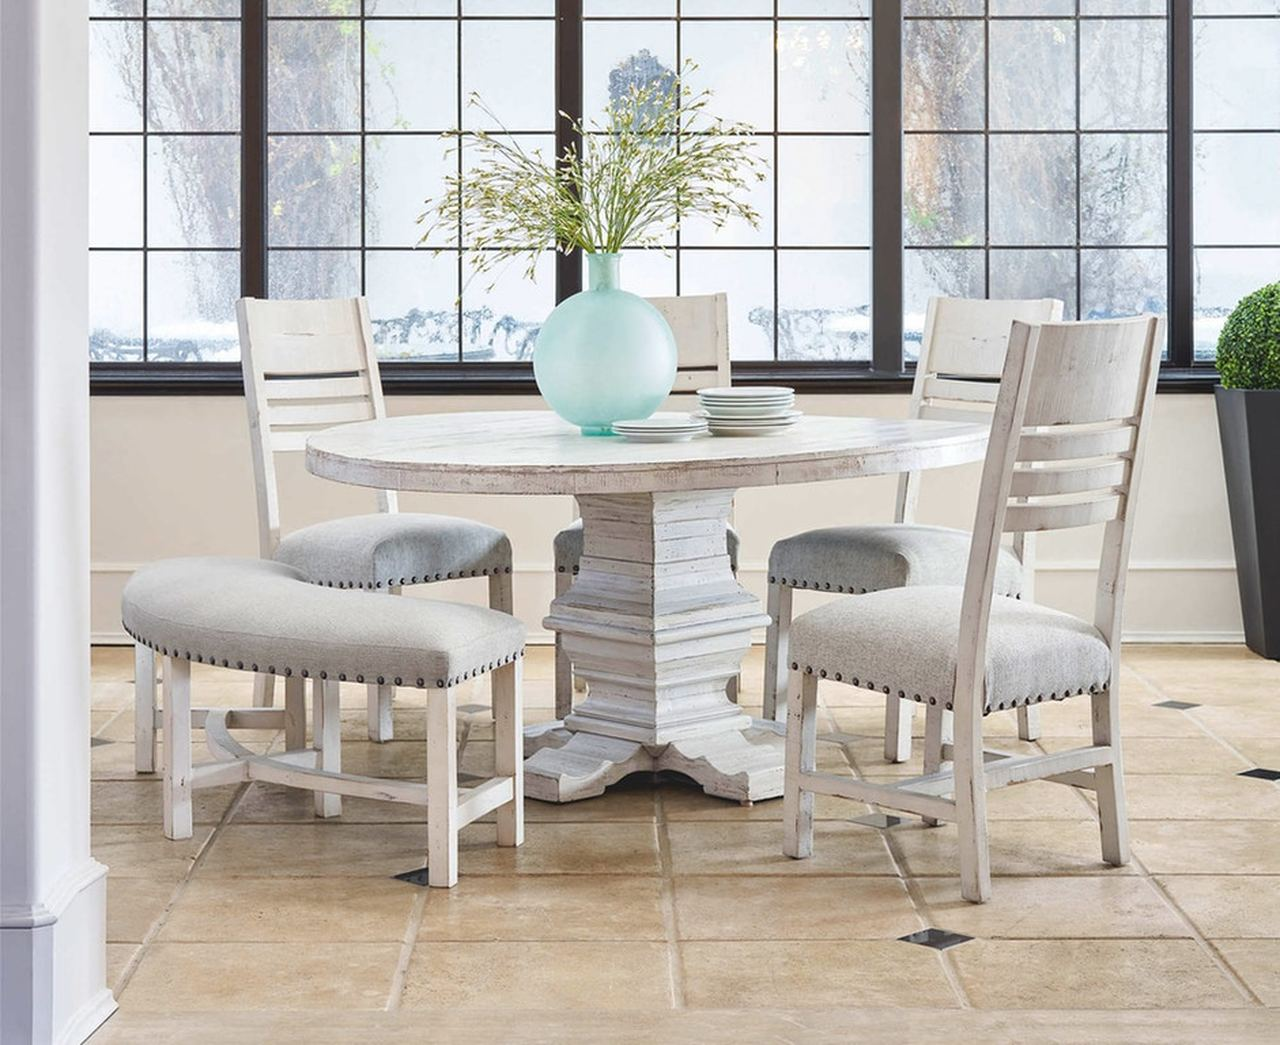 Condesa White Round Dining Table With Four Chairs By Elements Jaxco Furniture